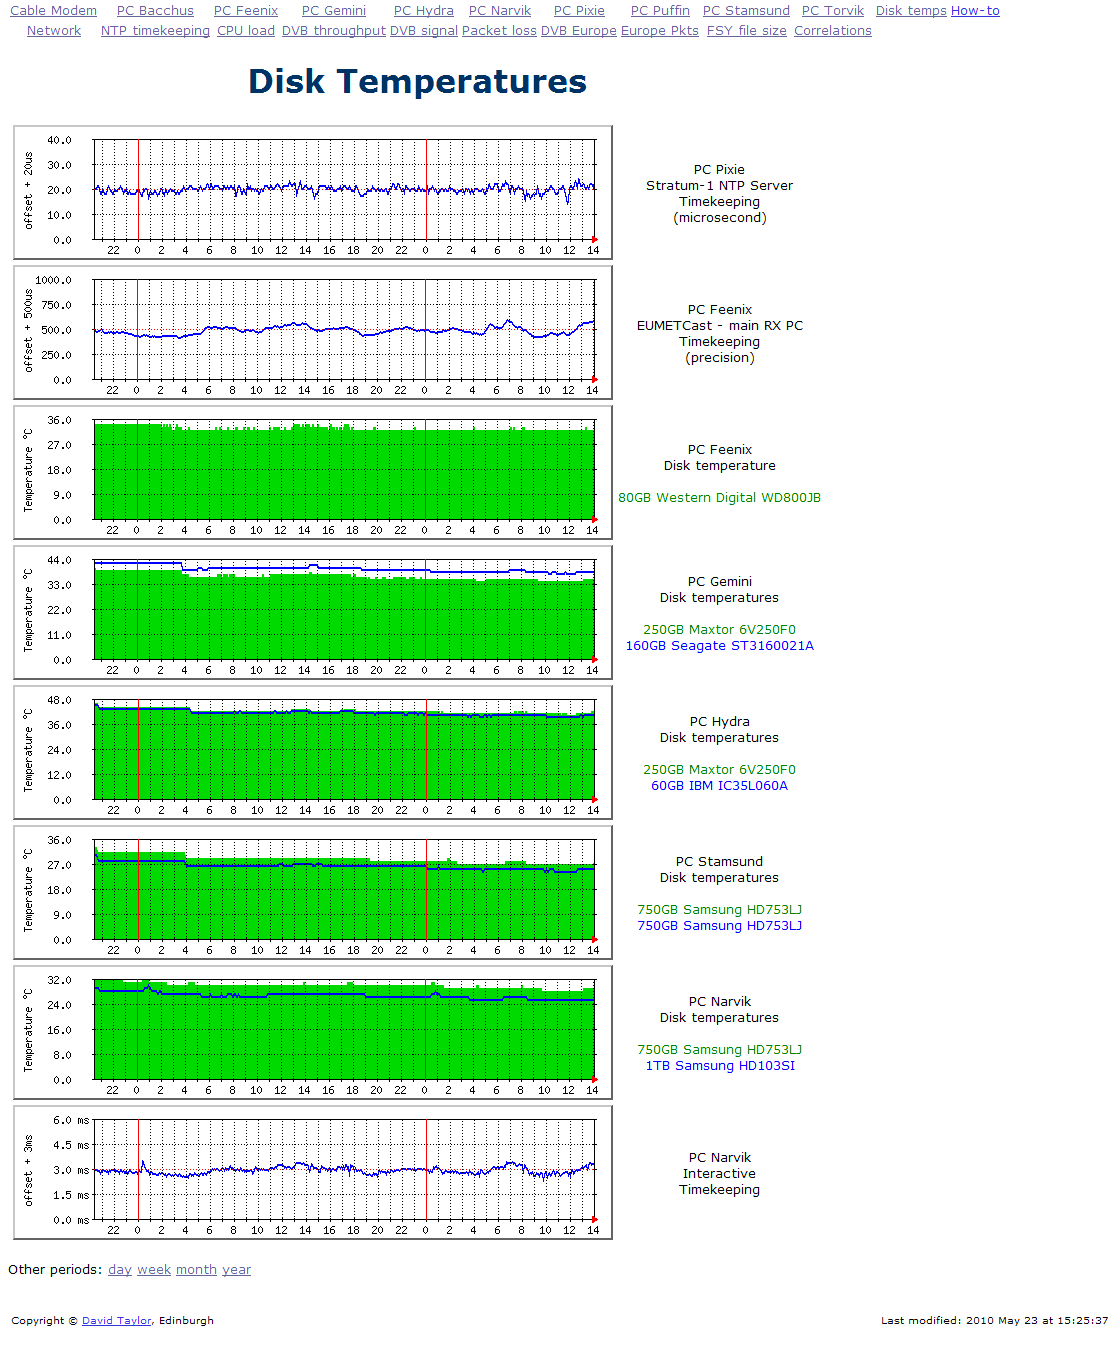 Performance Monitoring With Mrtg Snmp Informant Disk Temperature Wiring Diagram Heres The Screen Shot